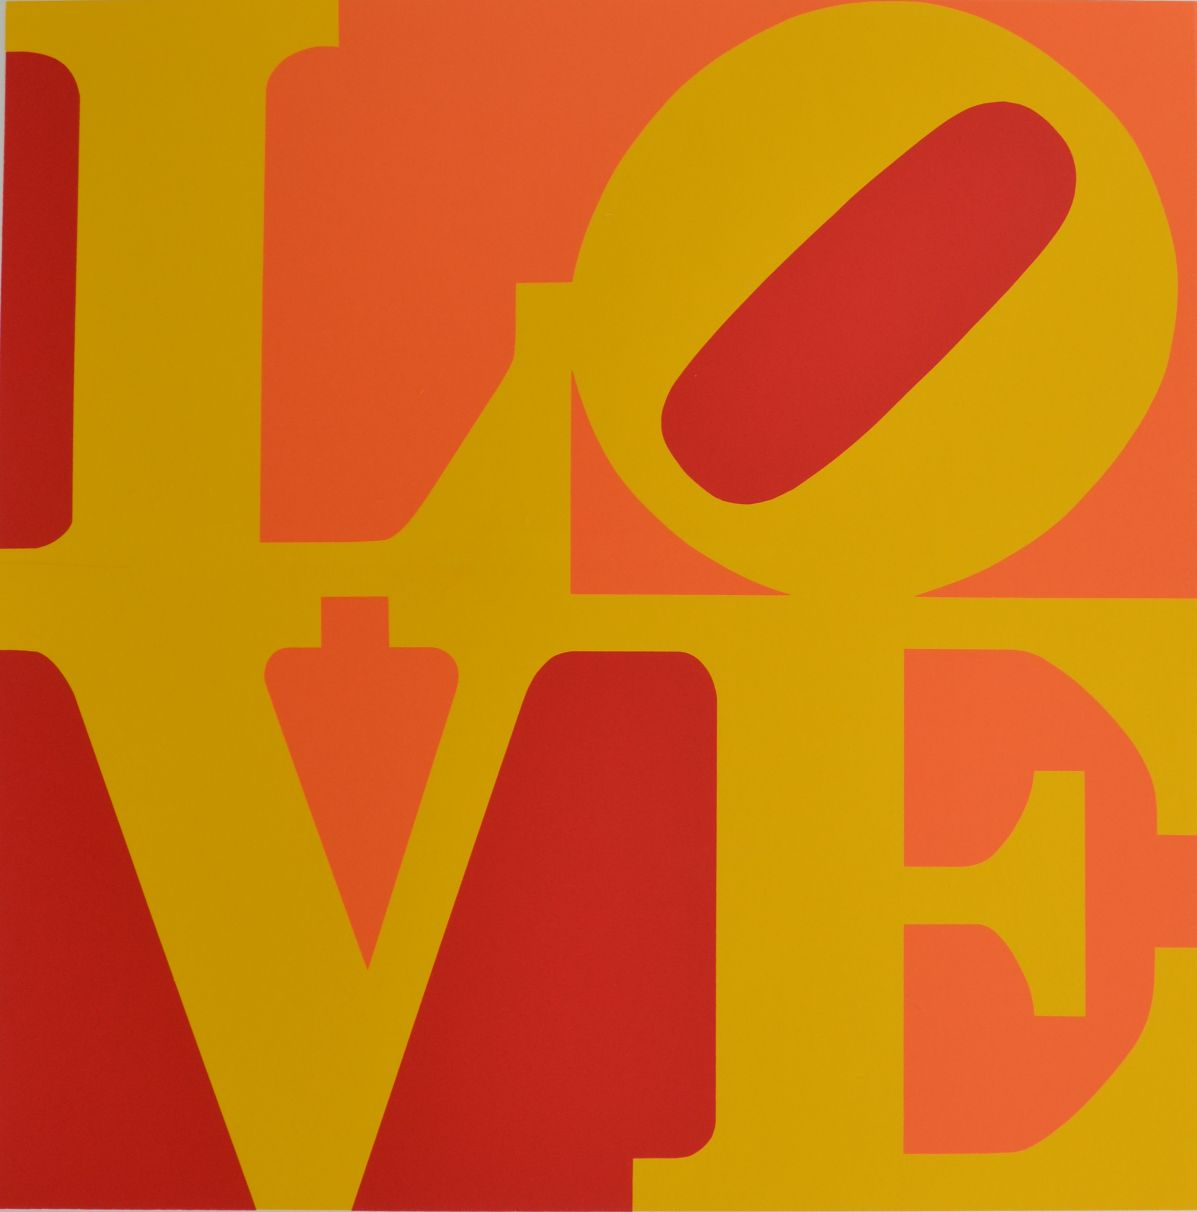 Screenprint tilted, Book of Love #10 (Red, orange, and yellow - french love) by Robert Indiana